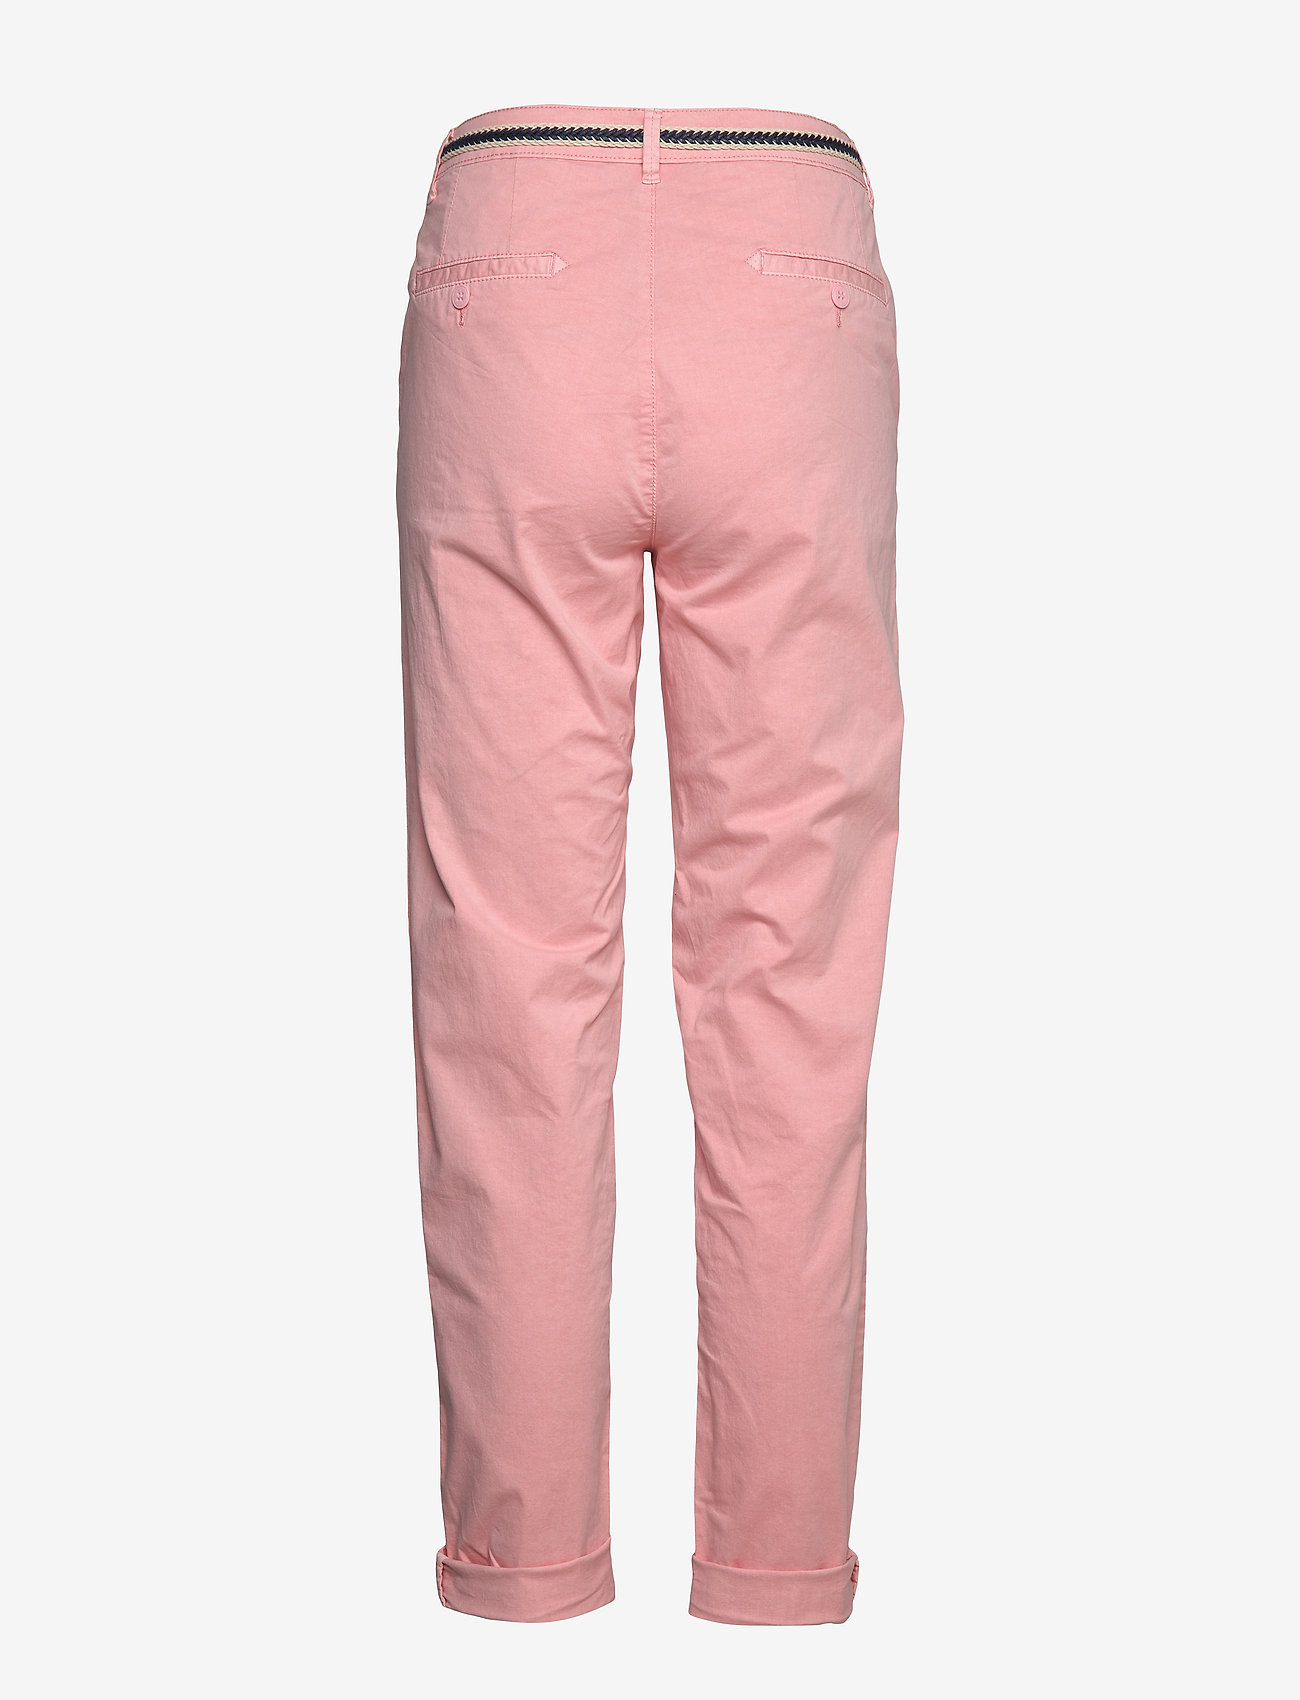 Esprit Casual - Pants woven - chinos - blush - 1